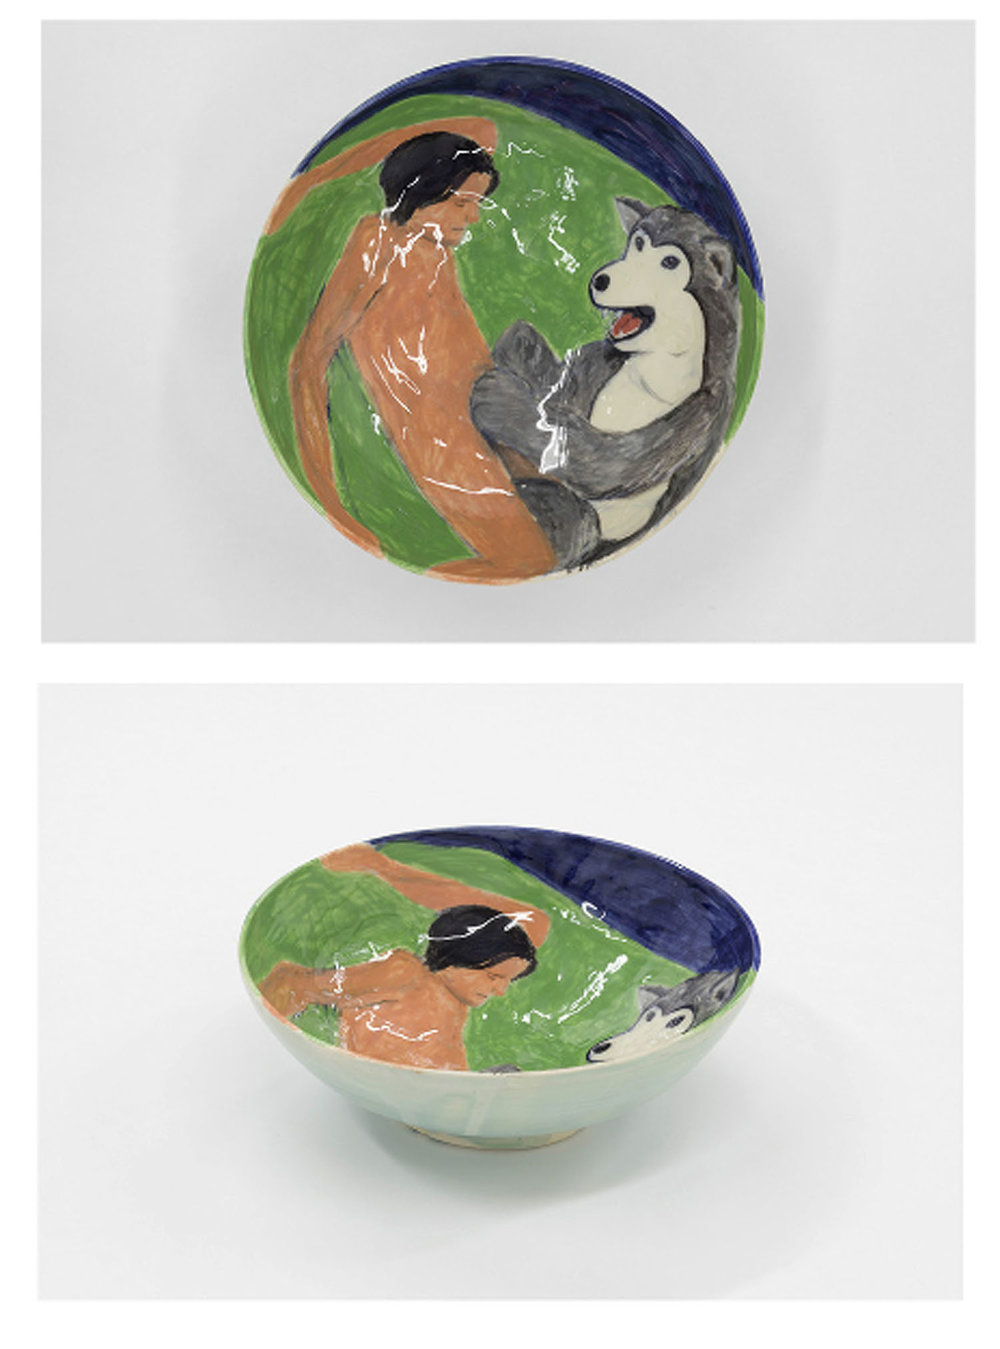 Urara Tsuchiya   Furries , 2016  Glazed stoneware bowl  Dimensions variable